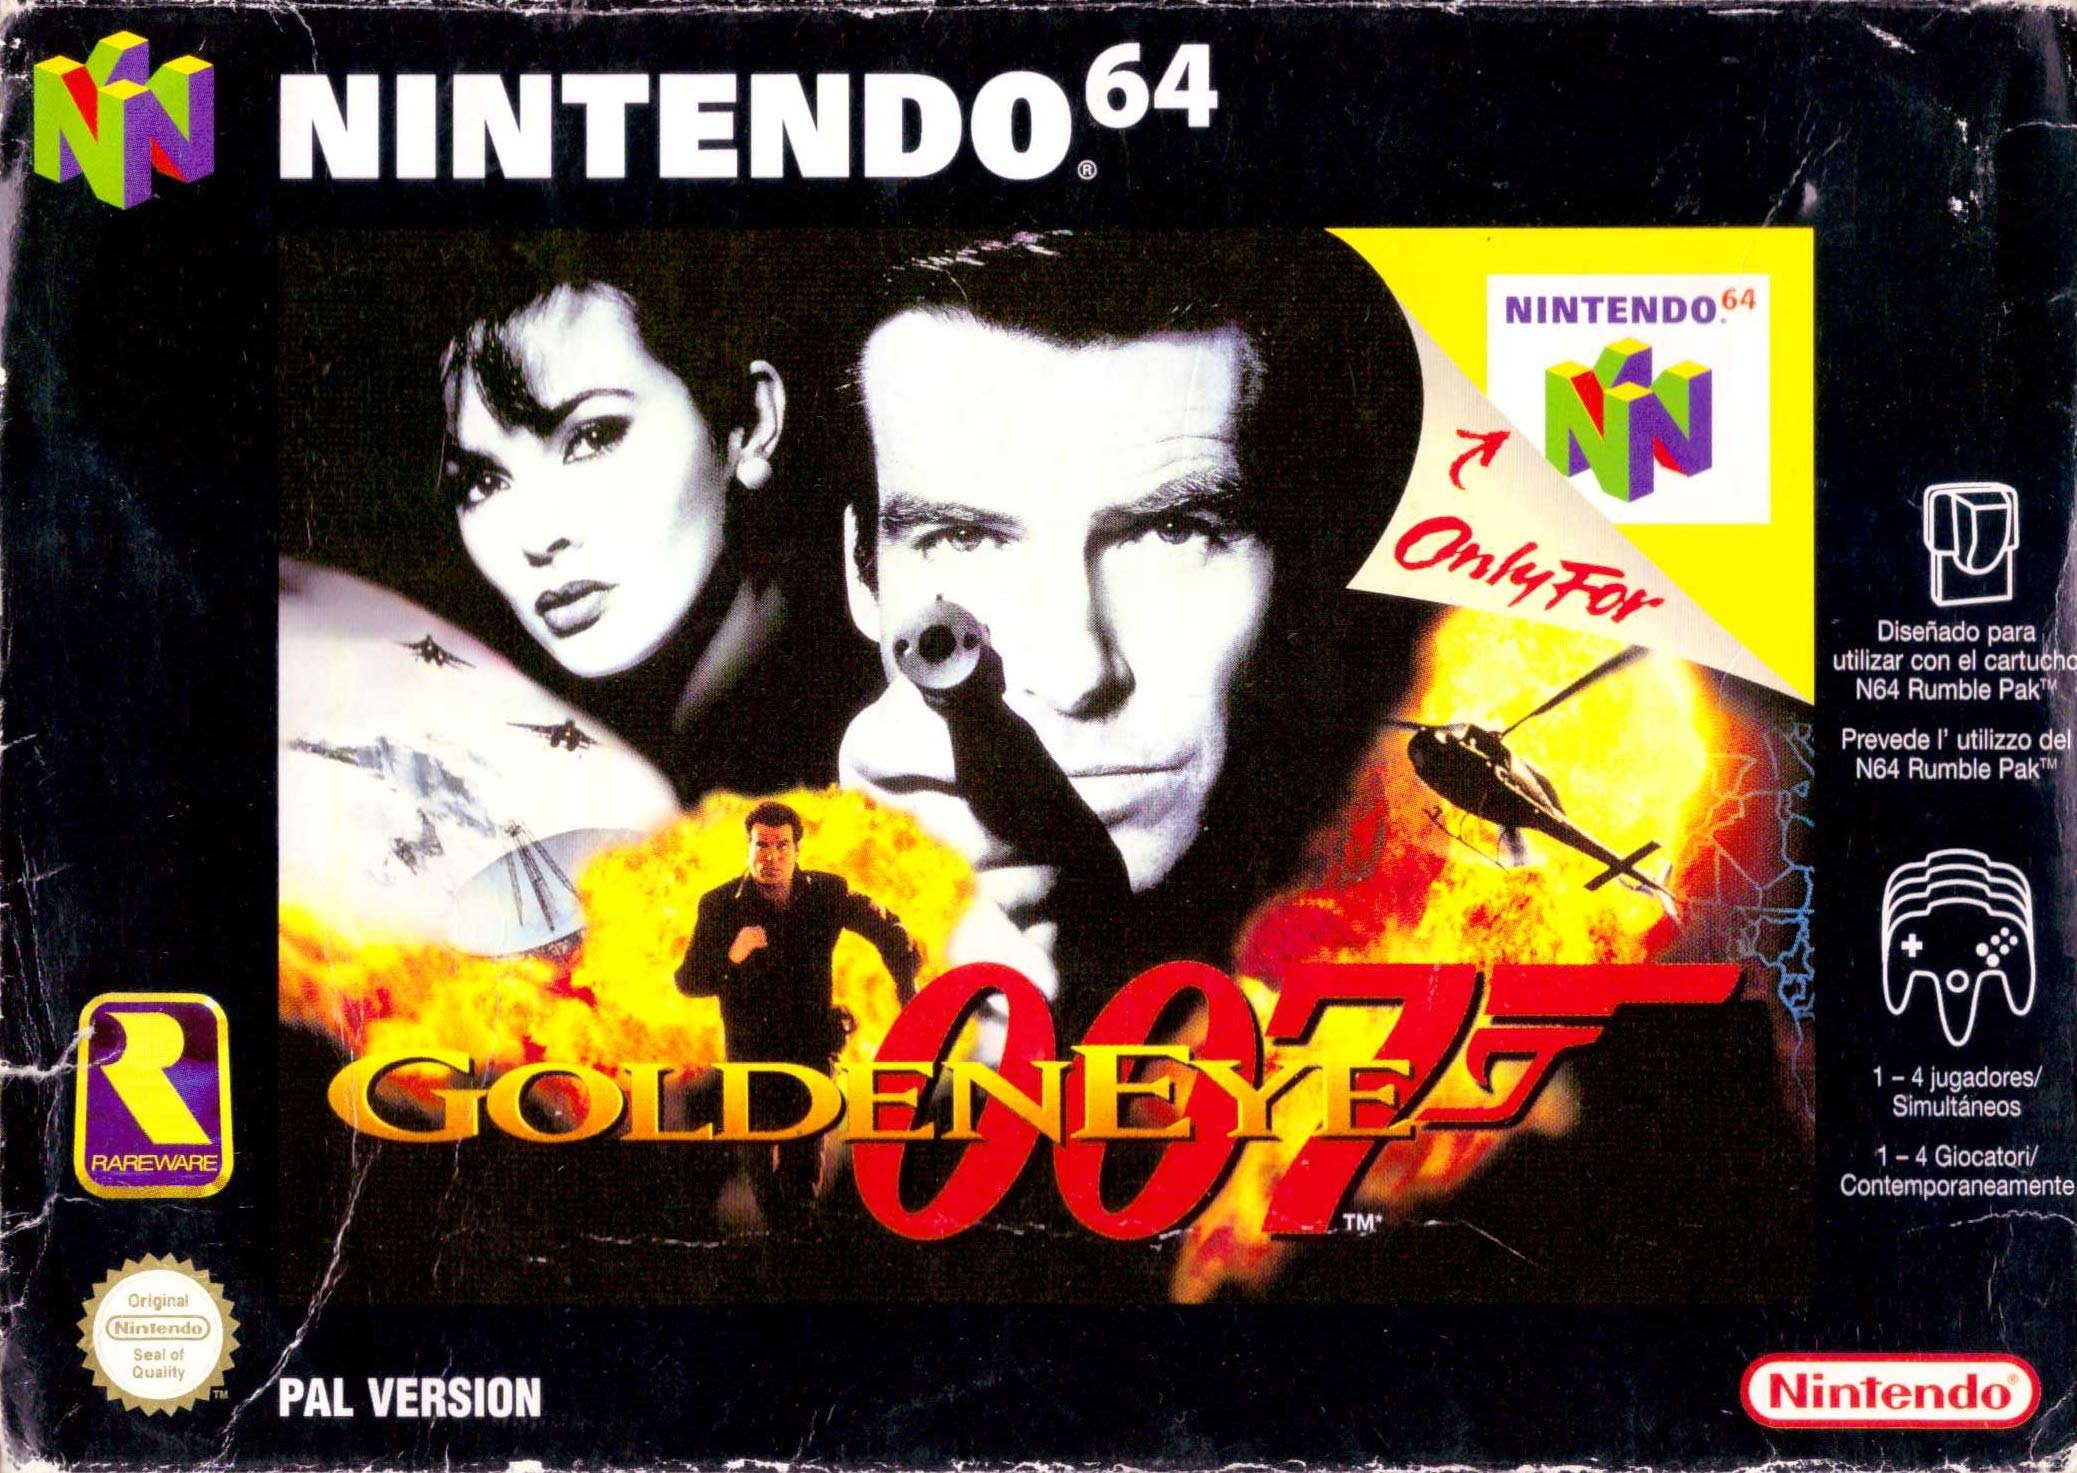 Amazon.com: GoldenEye 007: Video Games